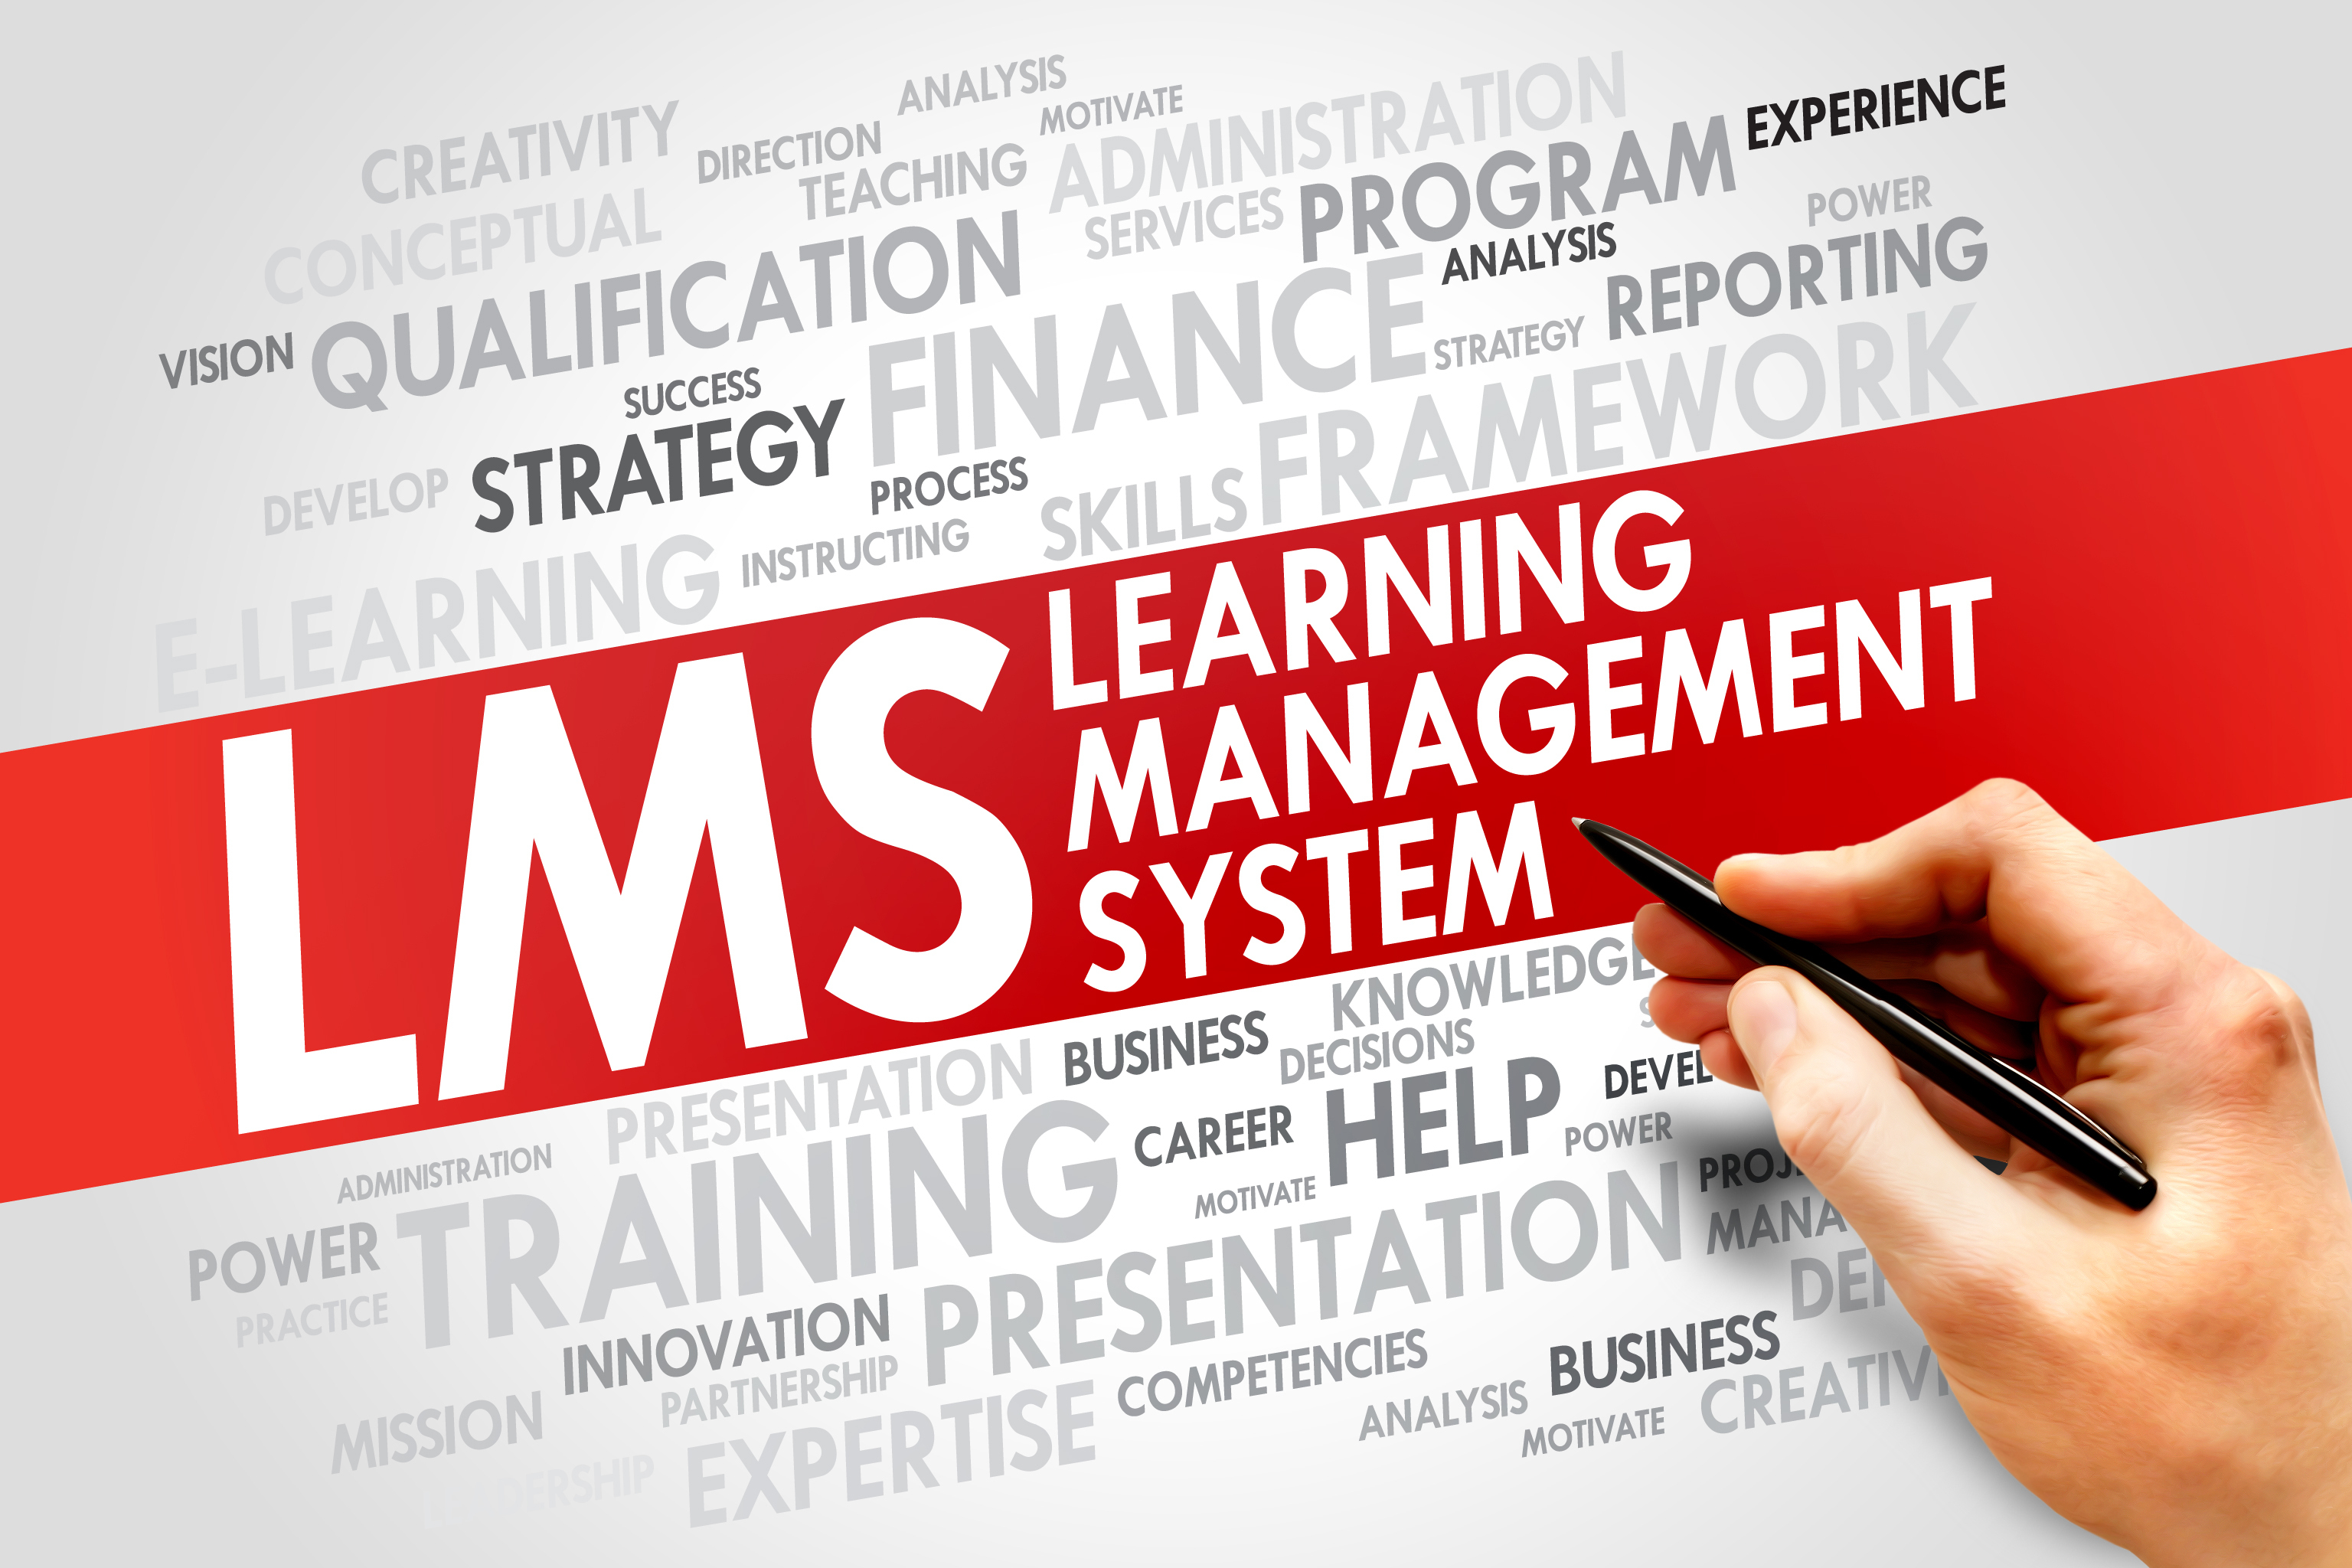 Open edX: The open source learning management system for